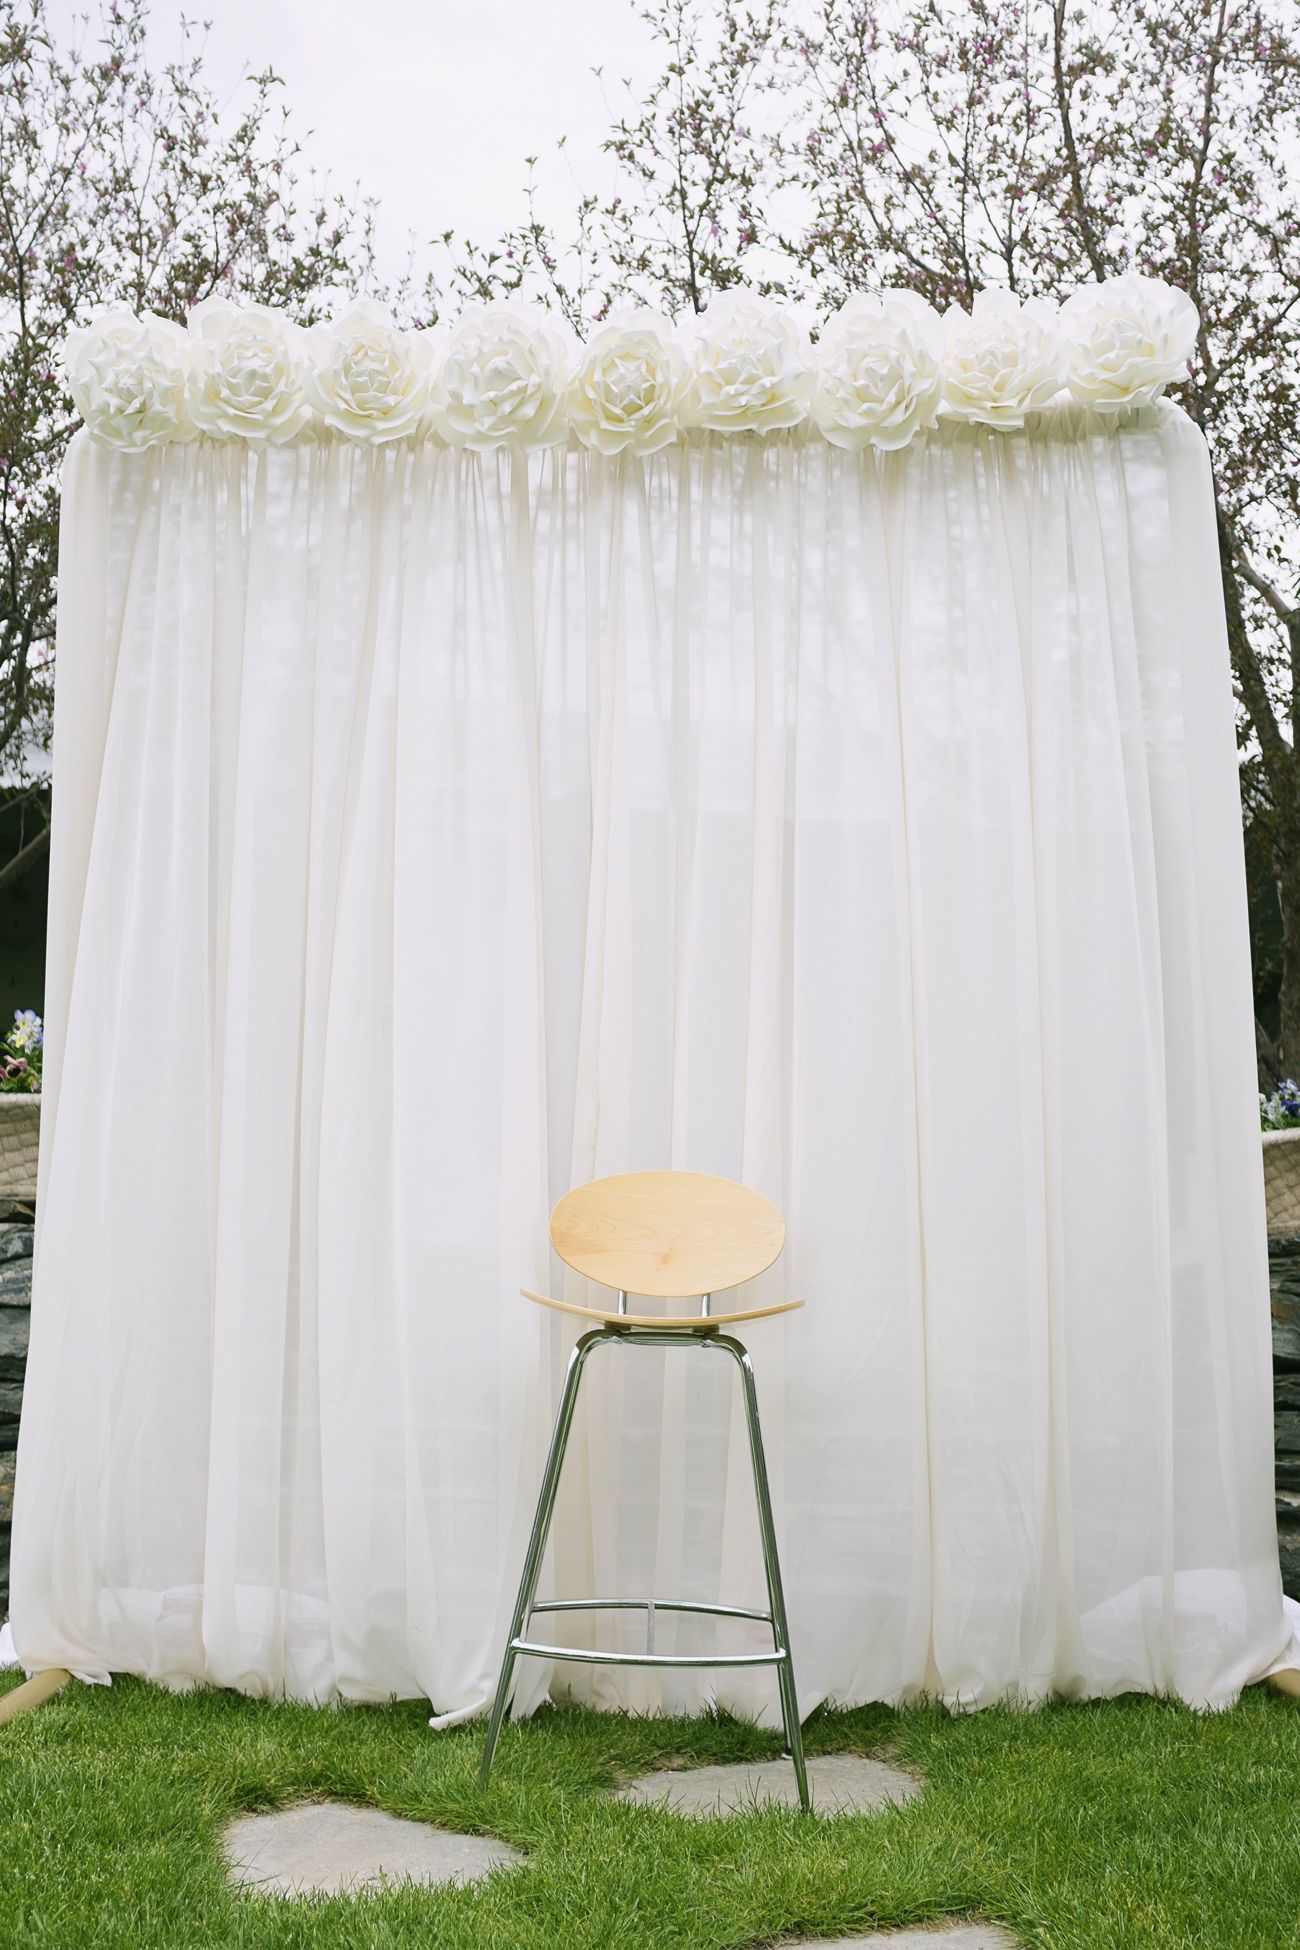 Simple, beautiful wedding background